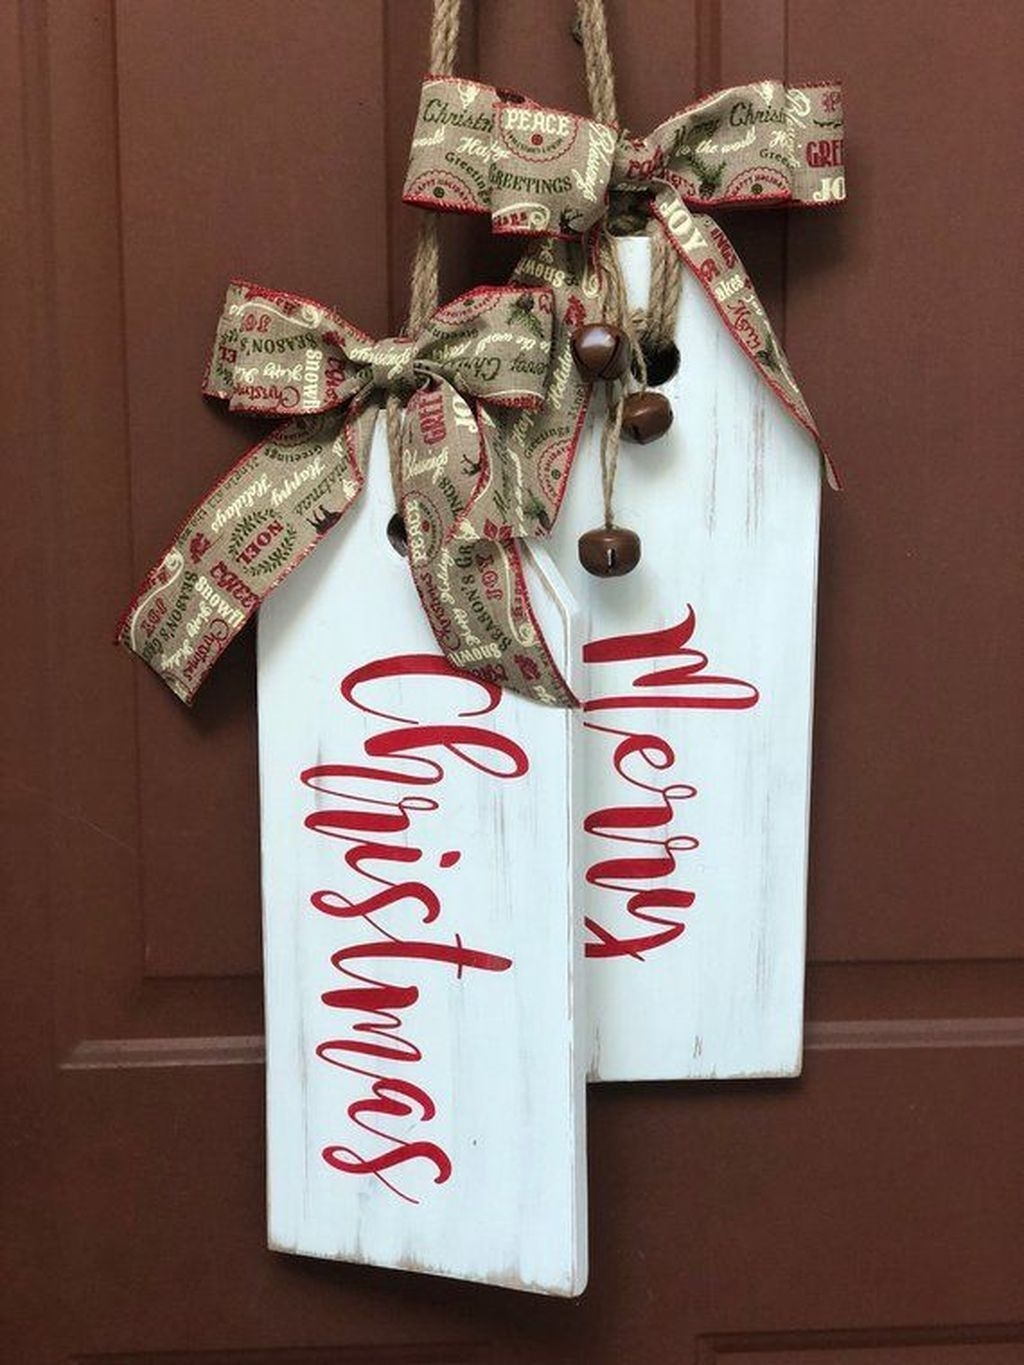 Captivating Diy Front Door Design Ideas For Special Christmas To Try 30